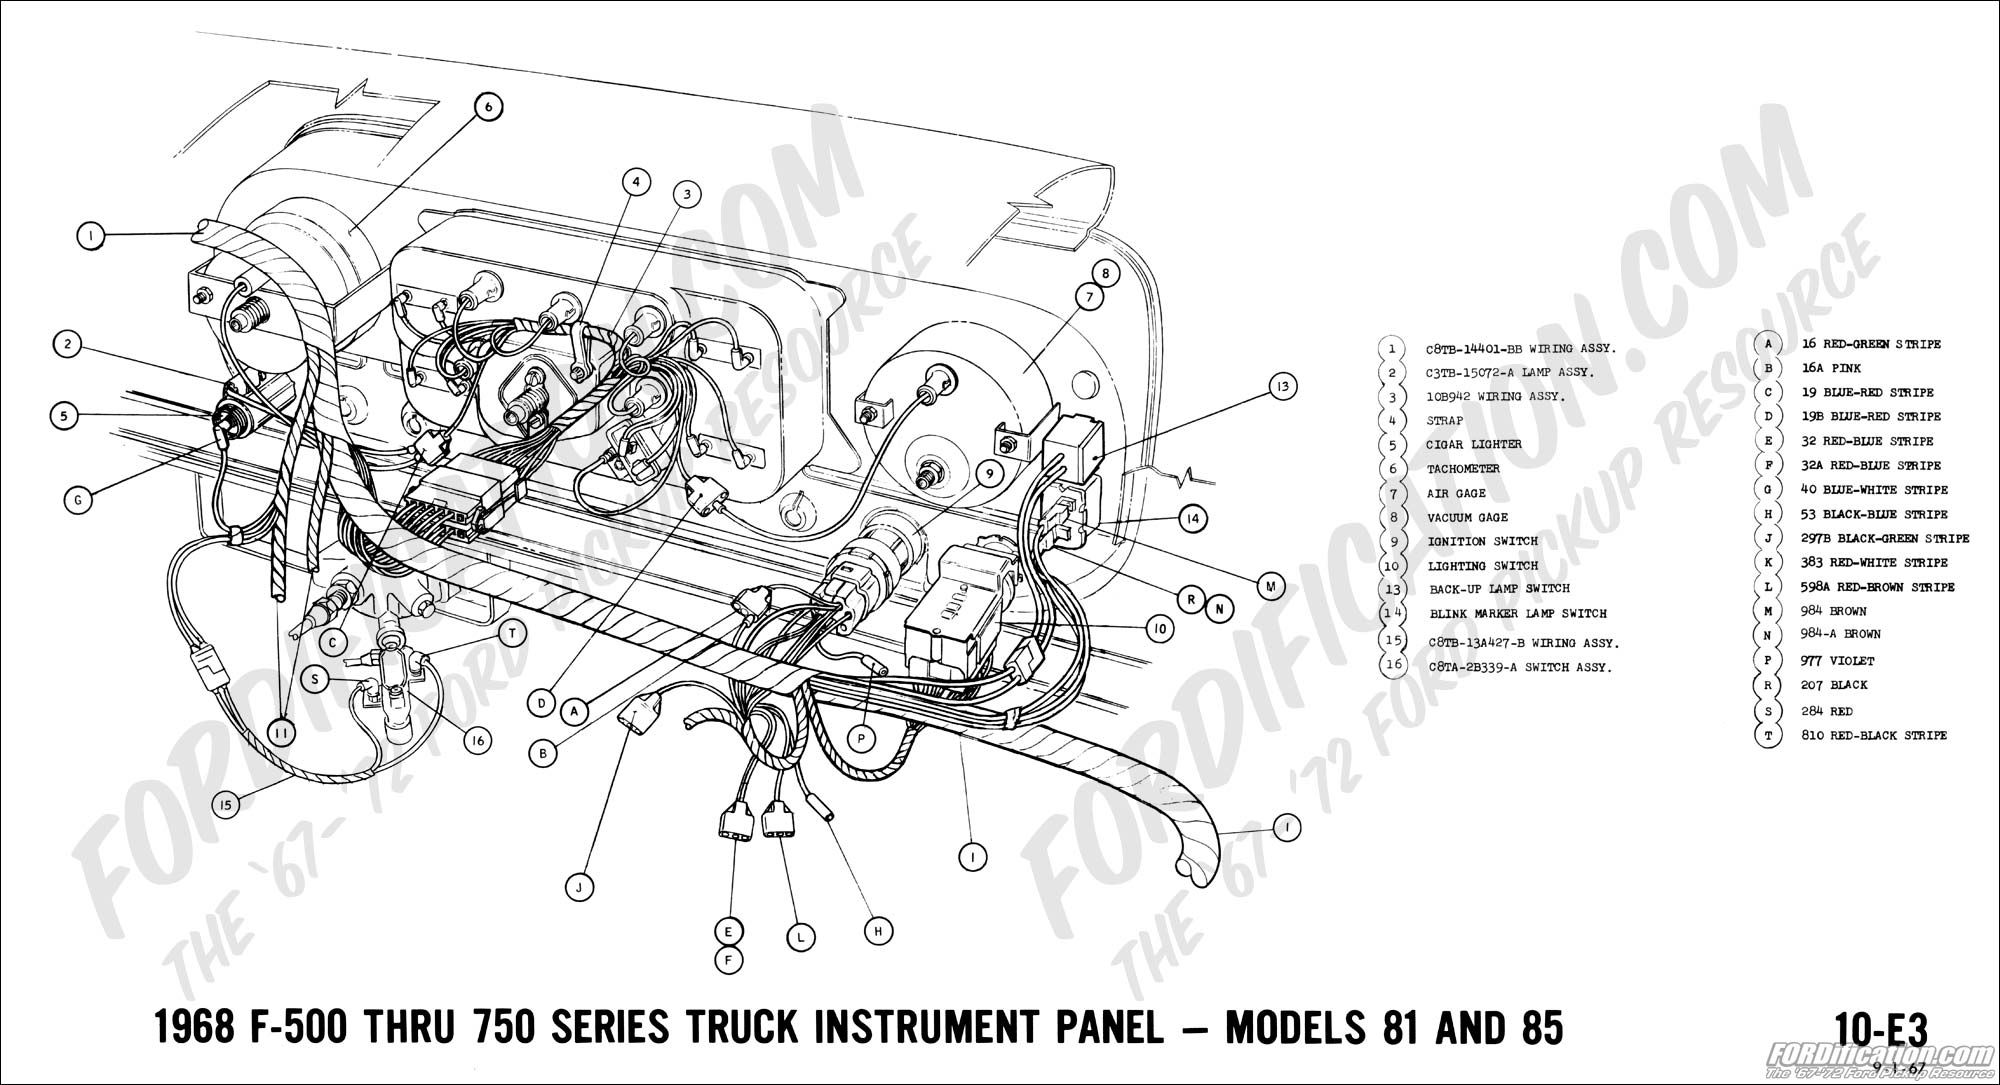 1972 ford f250 wiring diagram mitsubishi mirage truck diagrams fordification get free